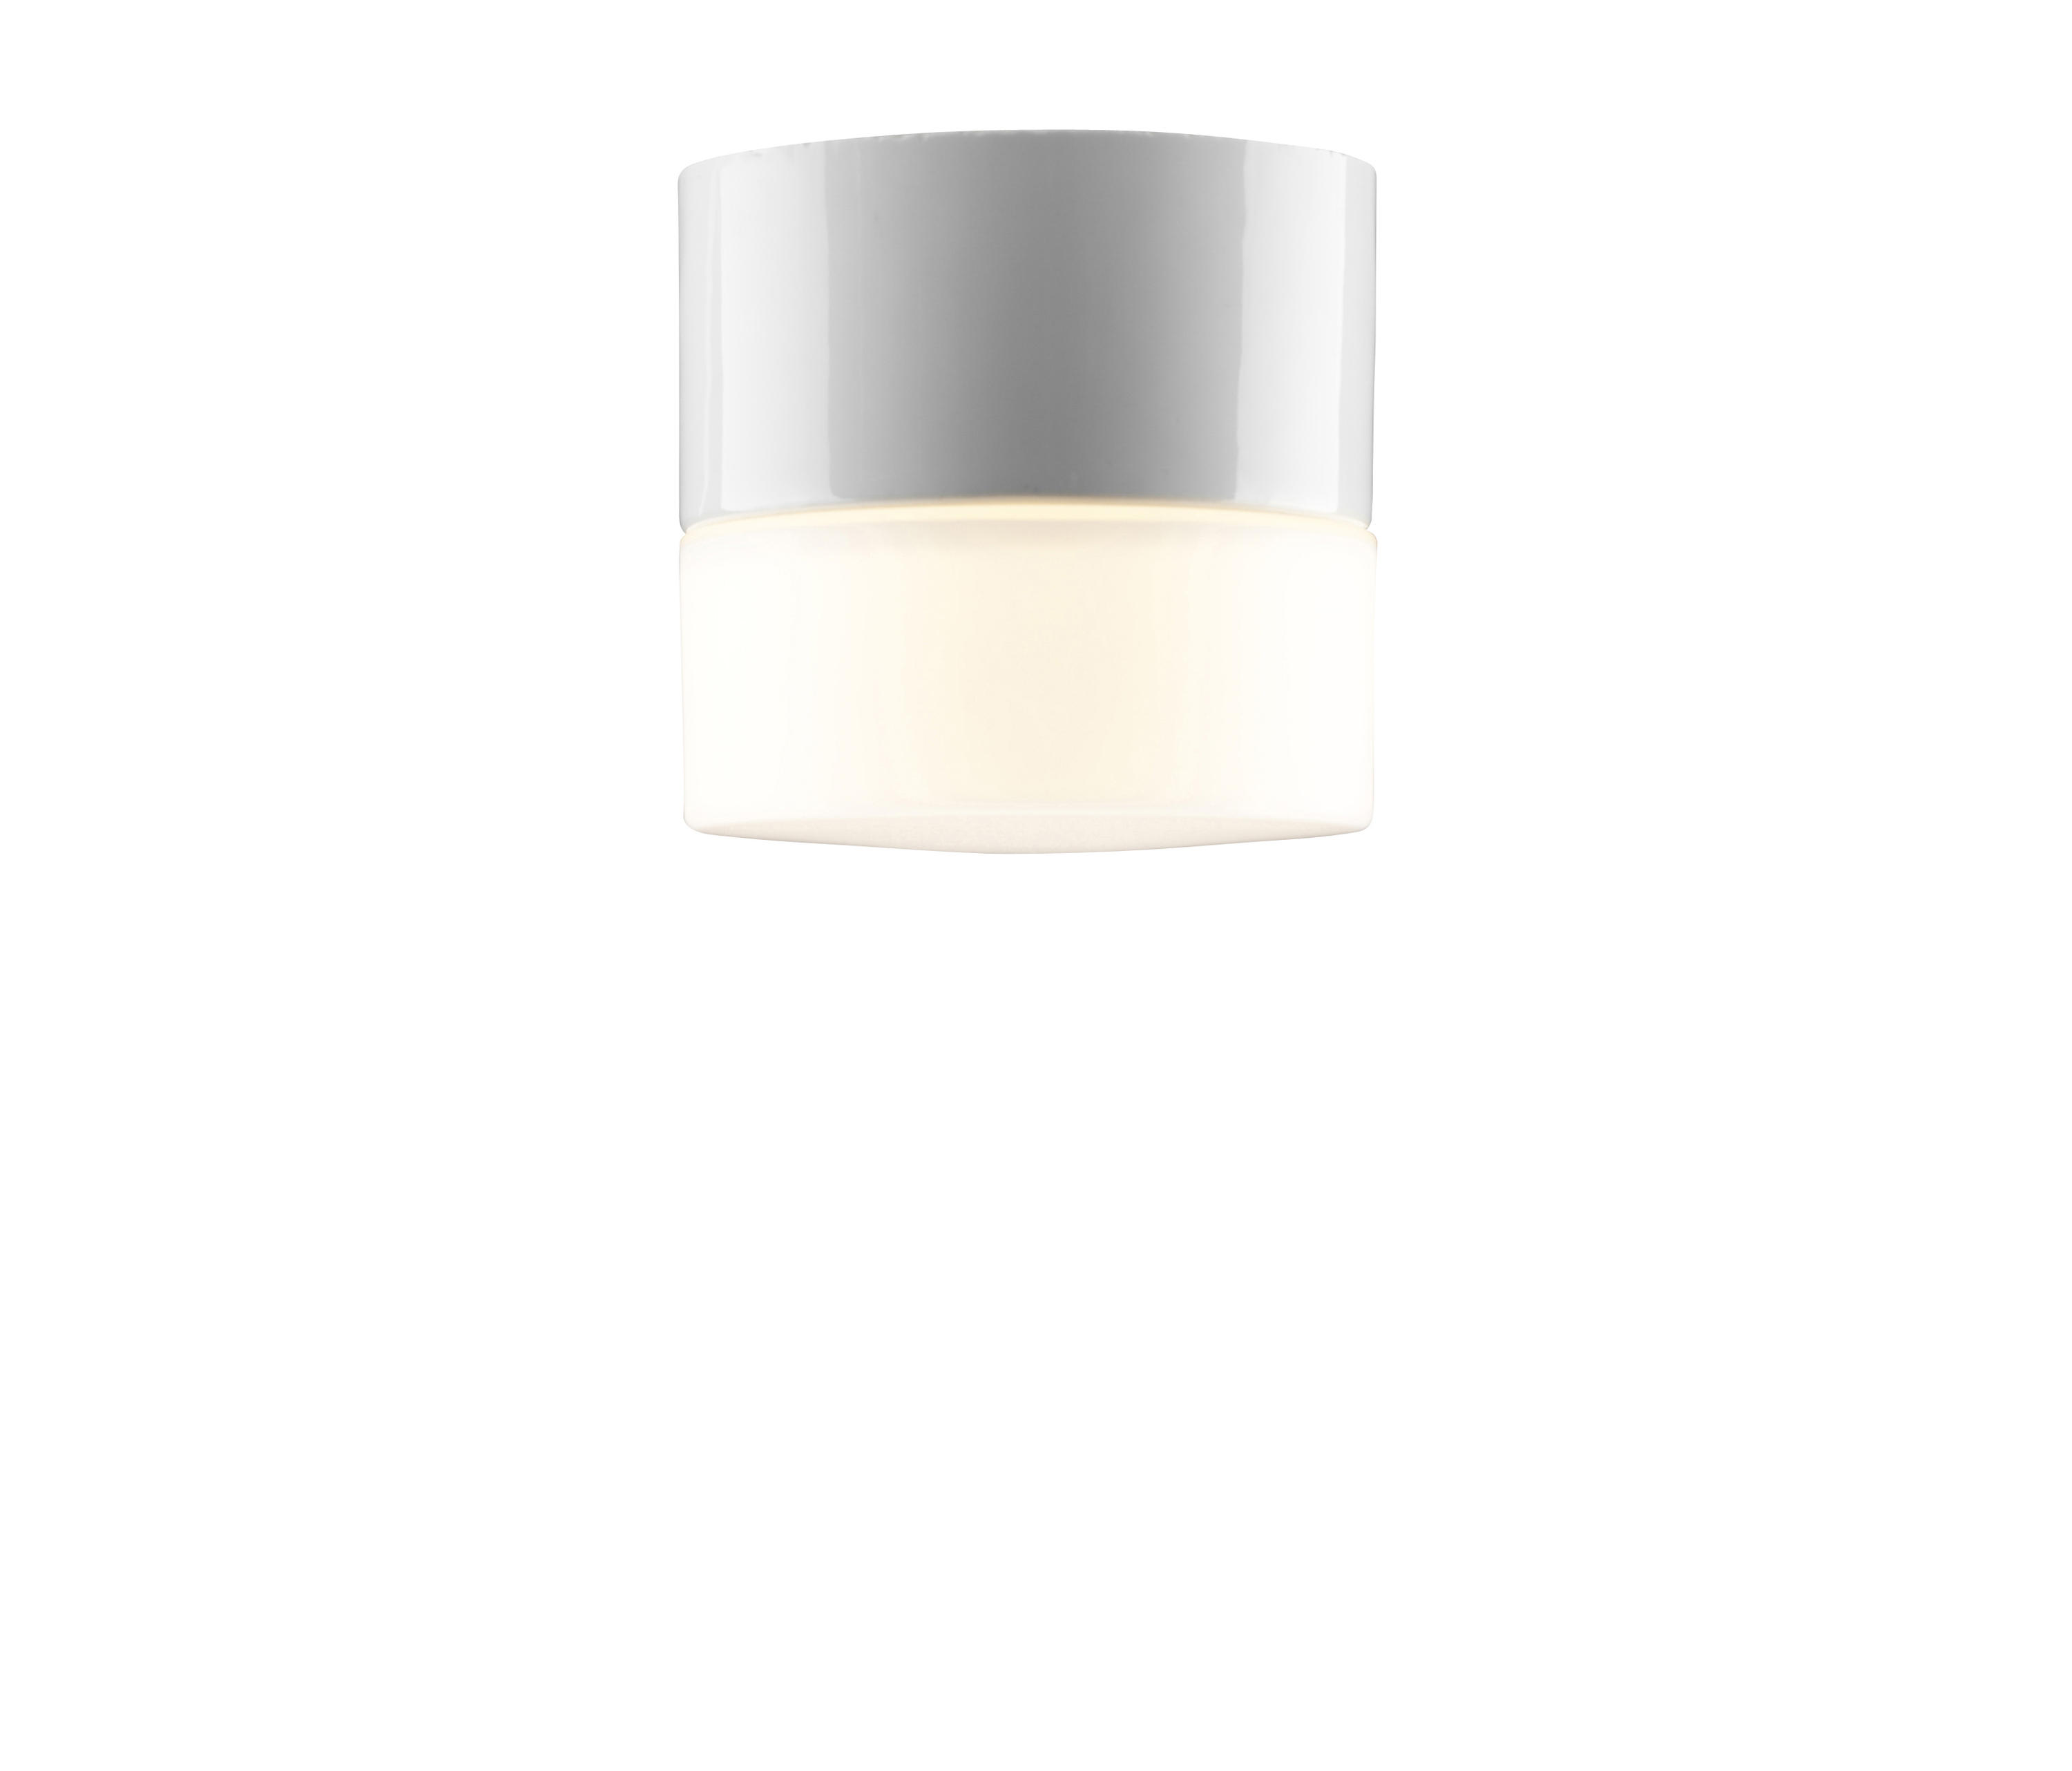 Opus 100 08201 200 10 Ceiling Lights From Ifö Electric